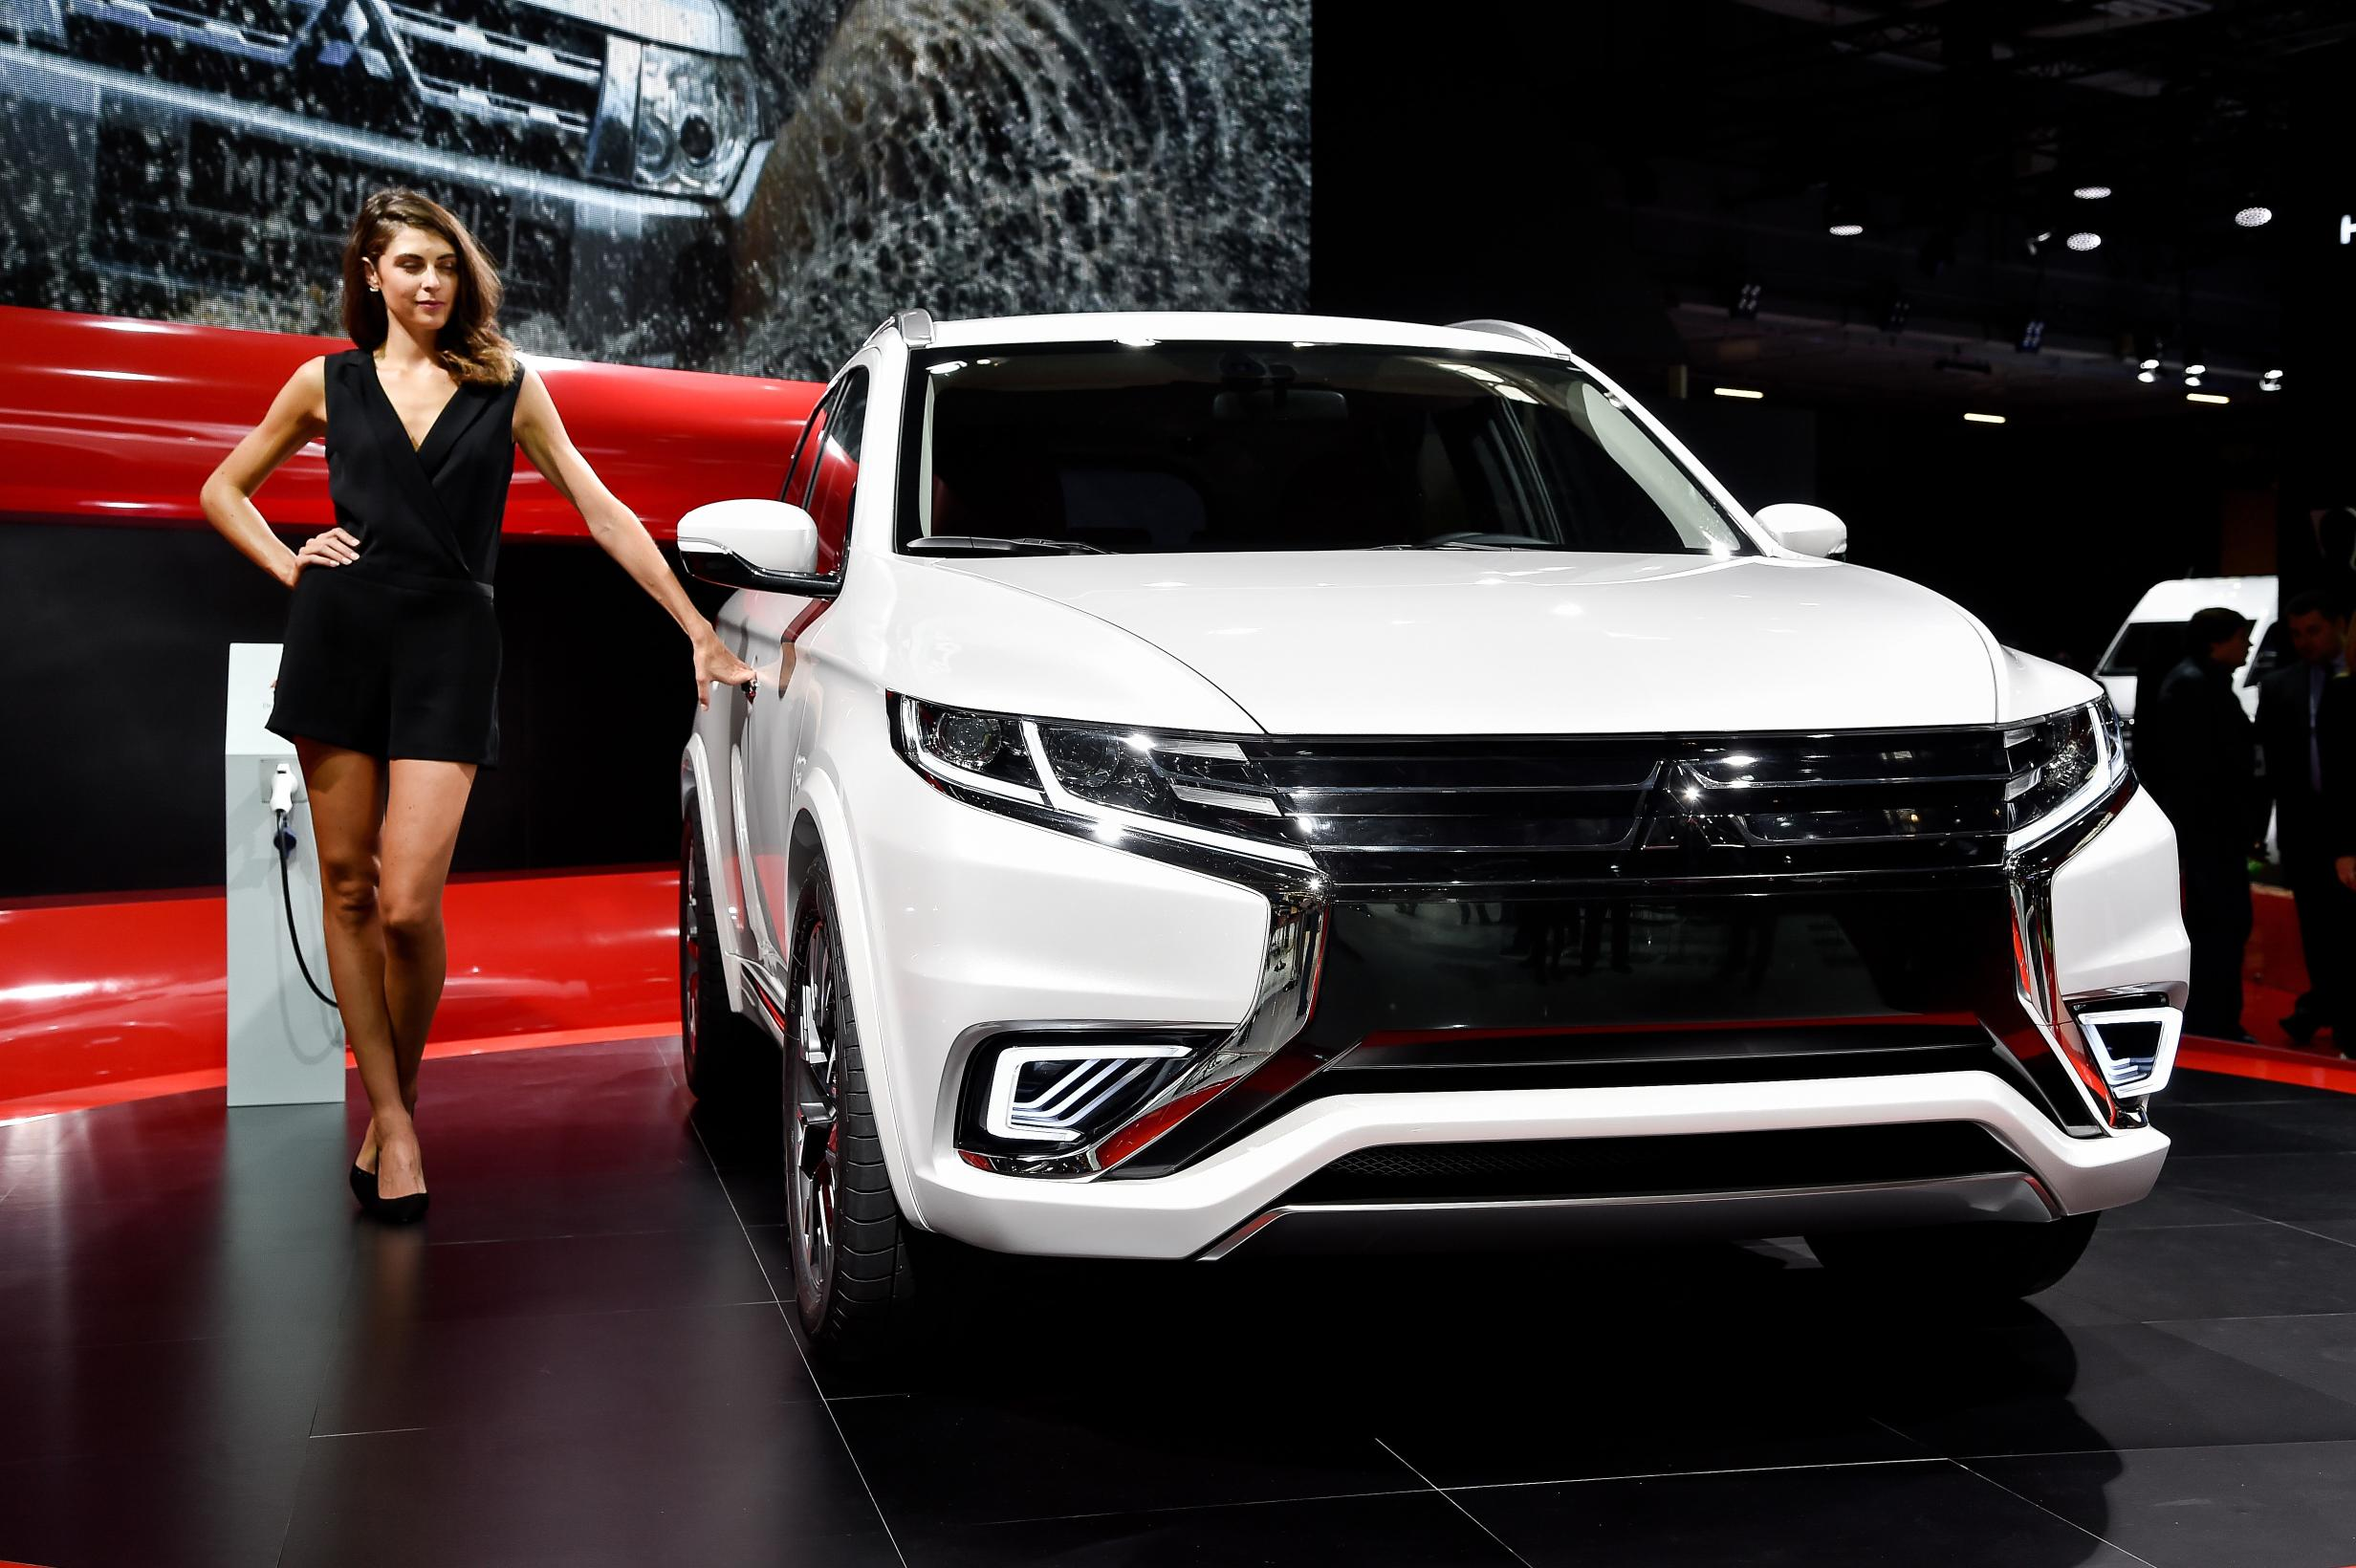 2019 Mitsubishi Outlander Release Date and Price